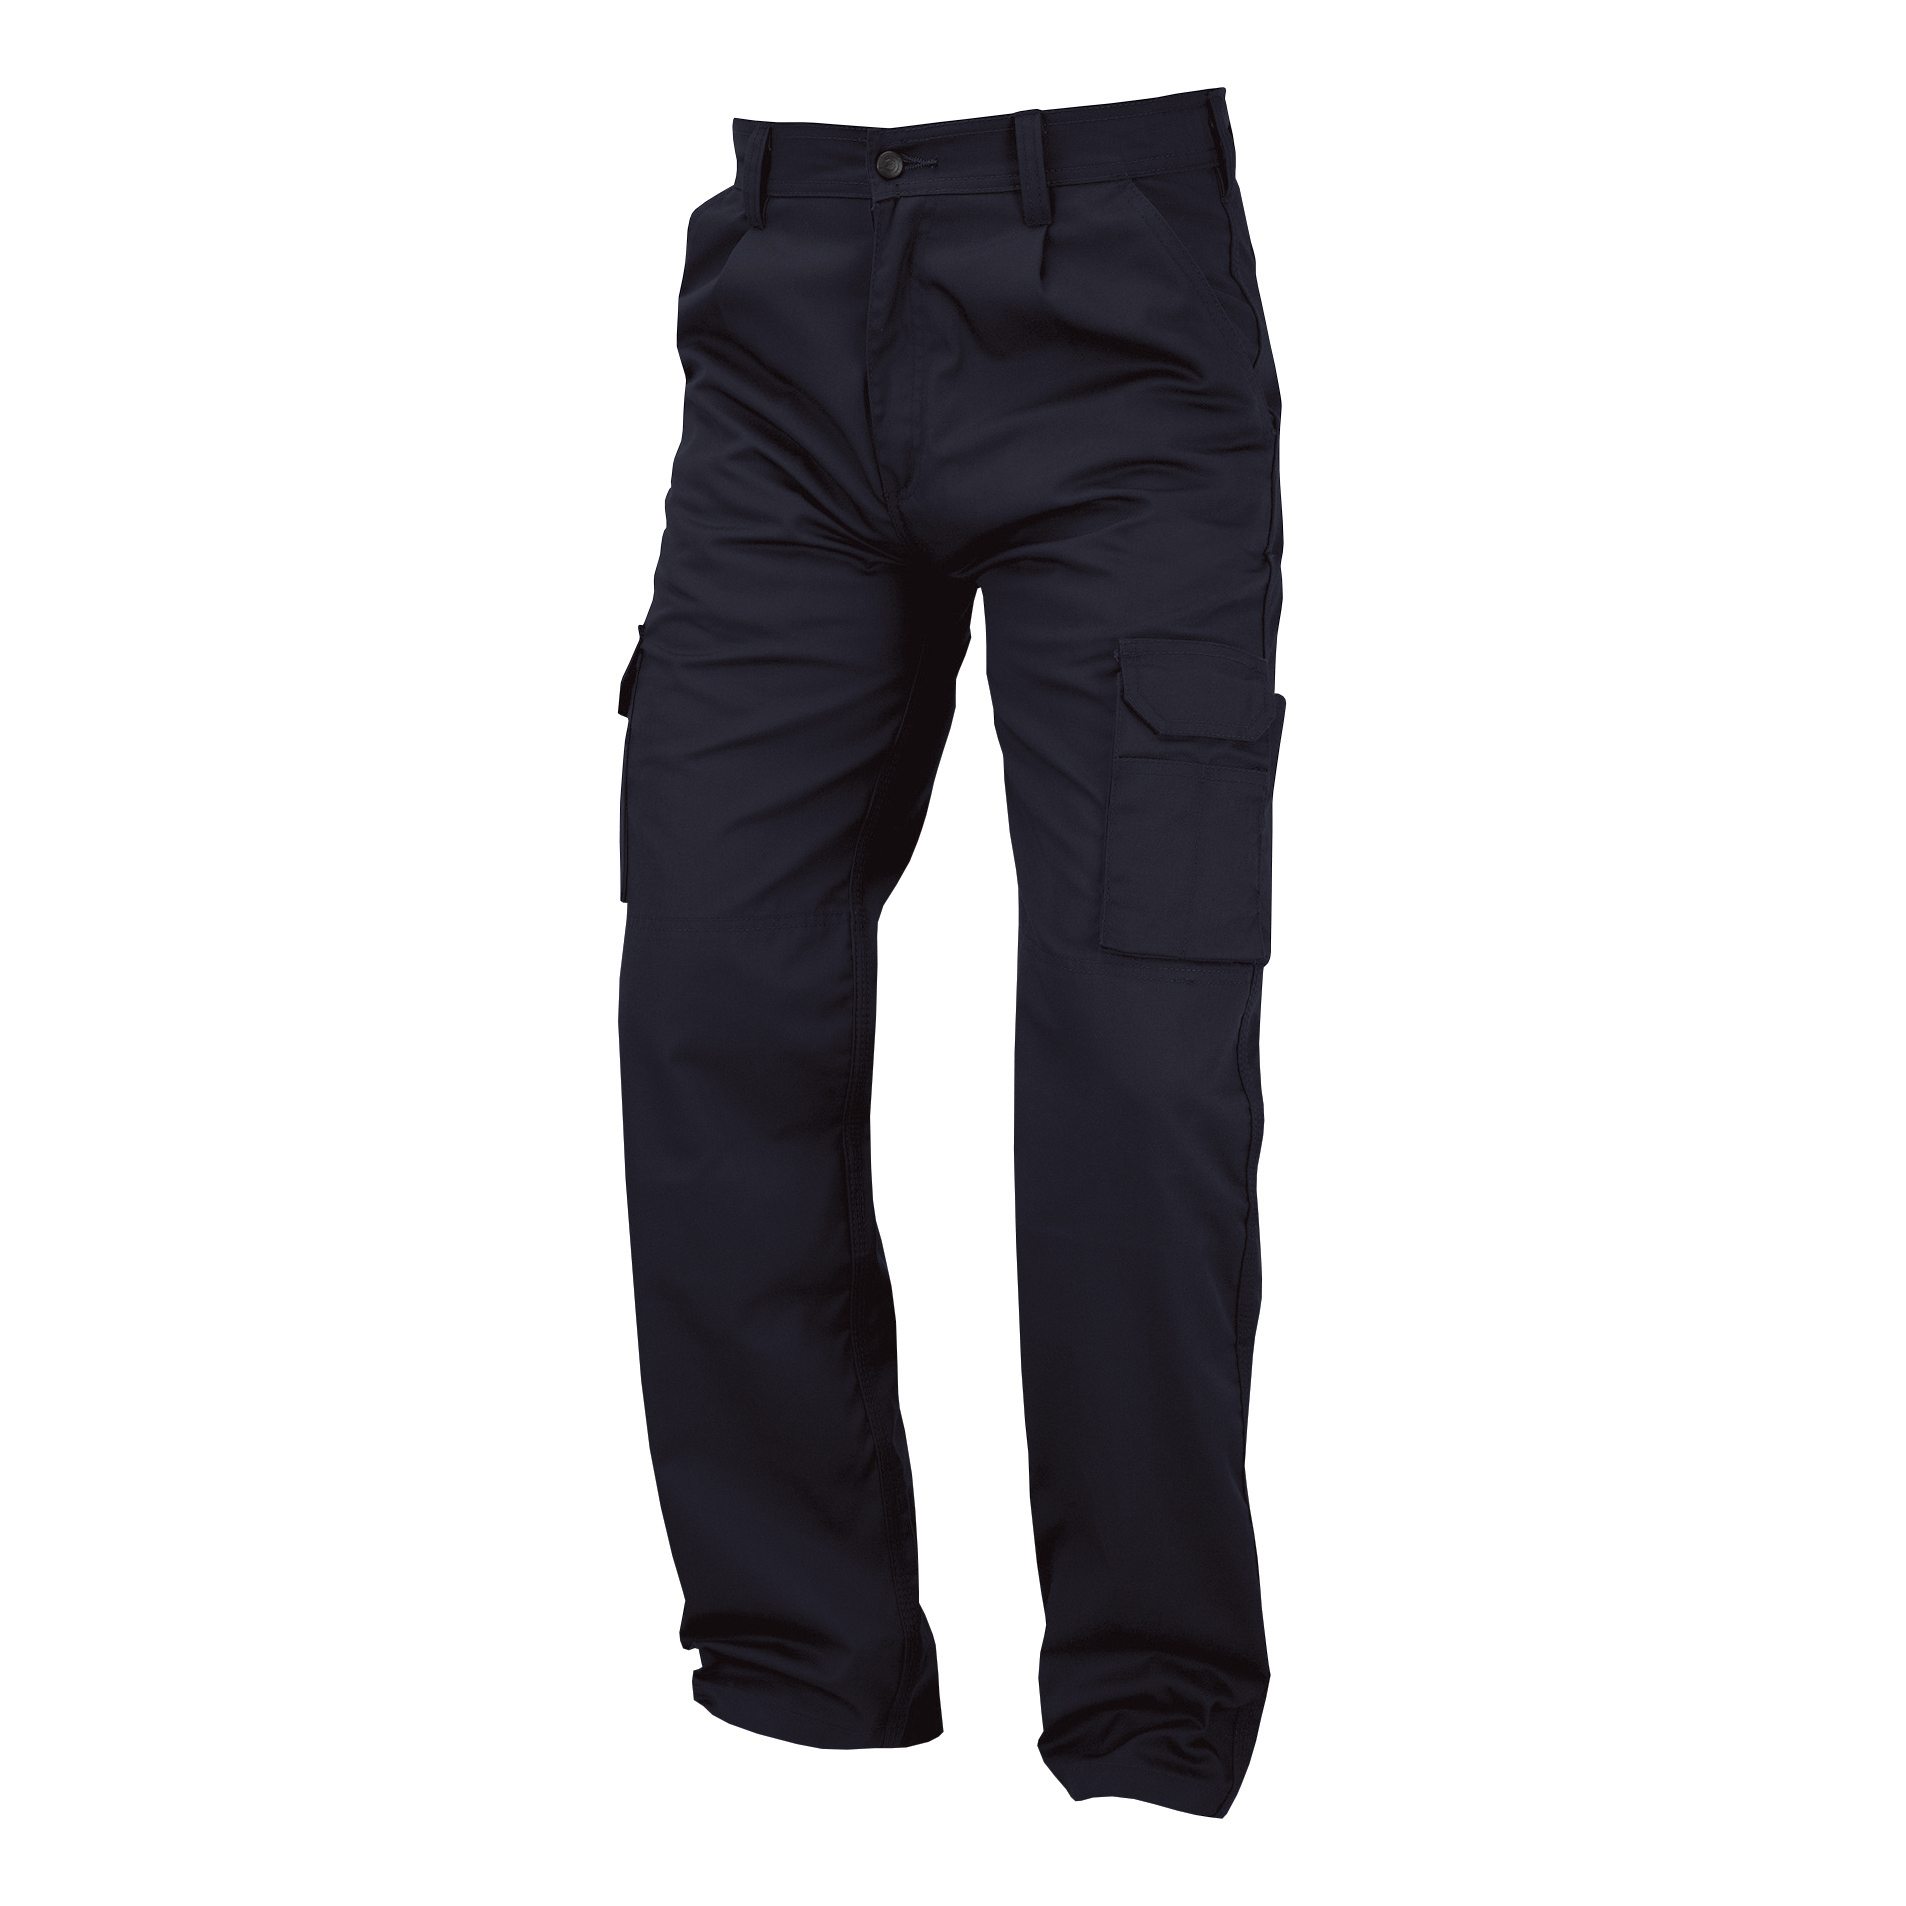 Business Kneepad Combat Trouser Multi-functional Waist 40in Leg 29in Navy